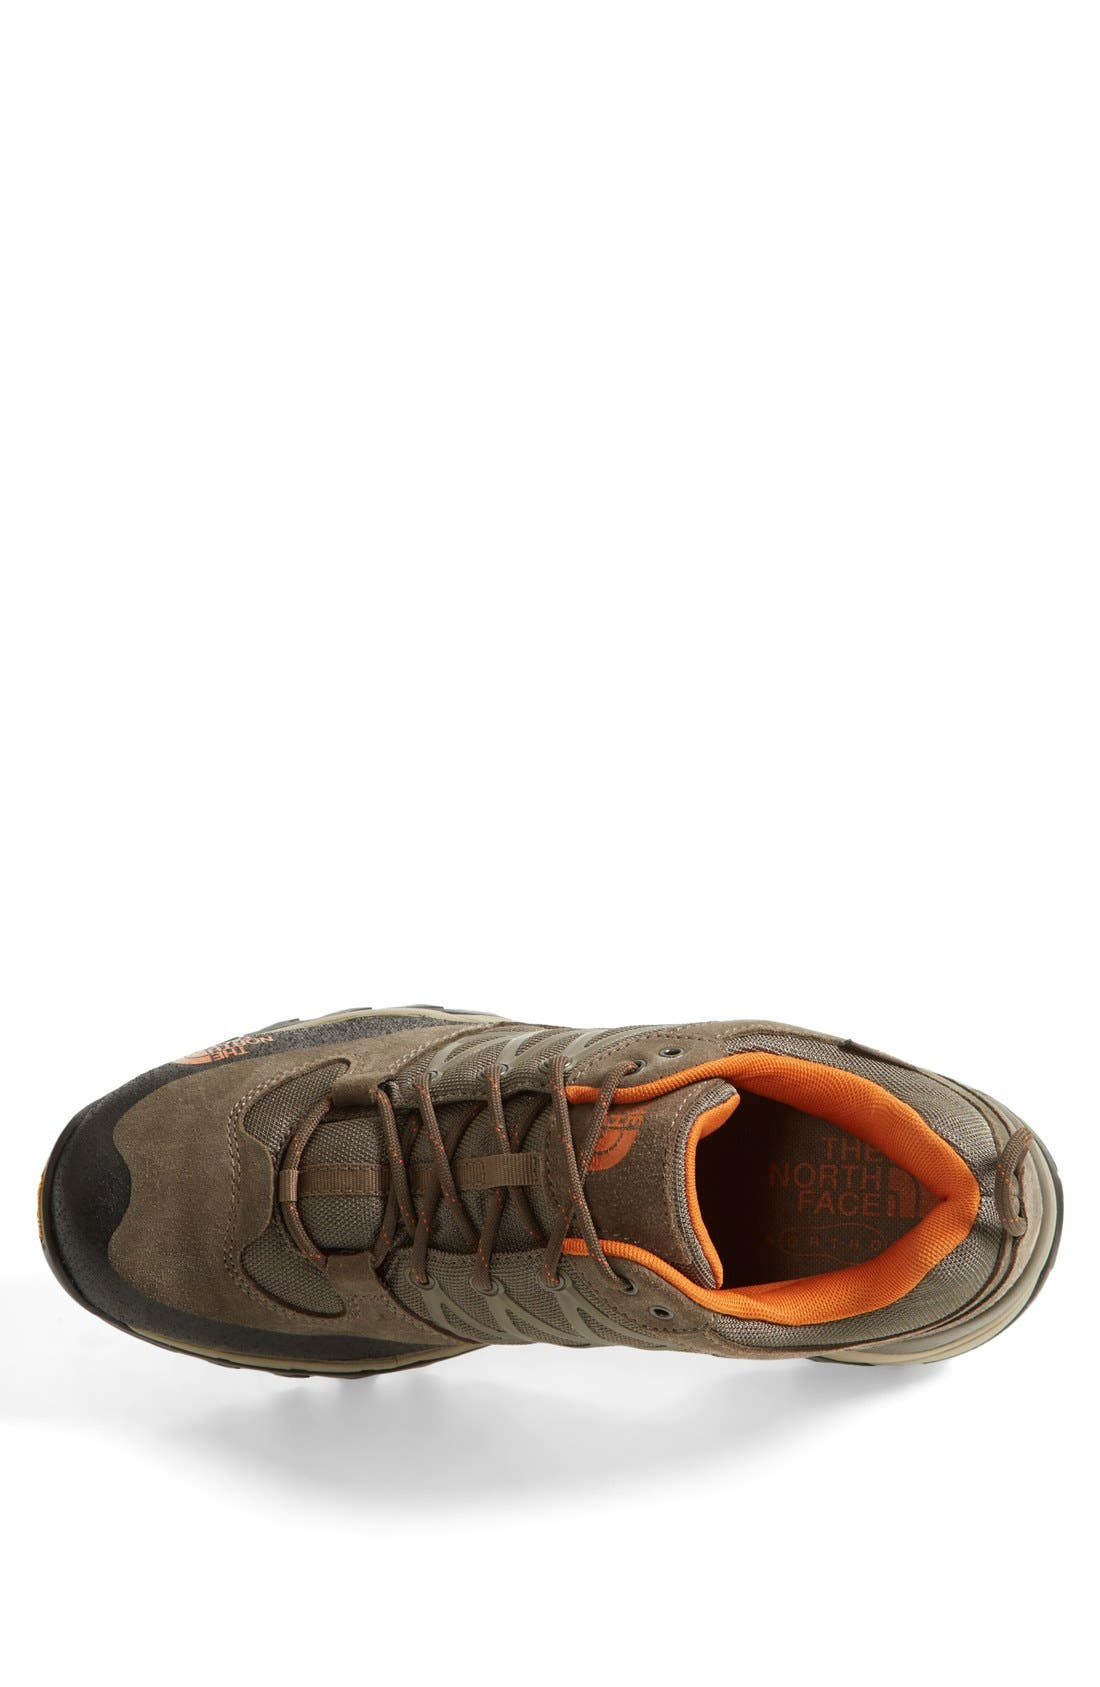 Alternate Image 3  - The North Face 'Storm WP' Hiking Shoe (Men)